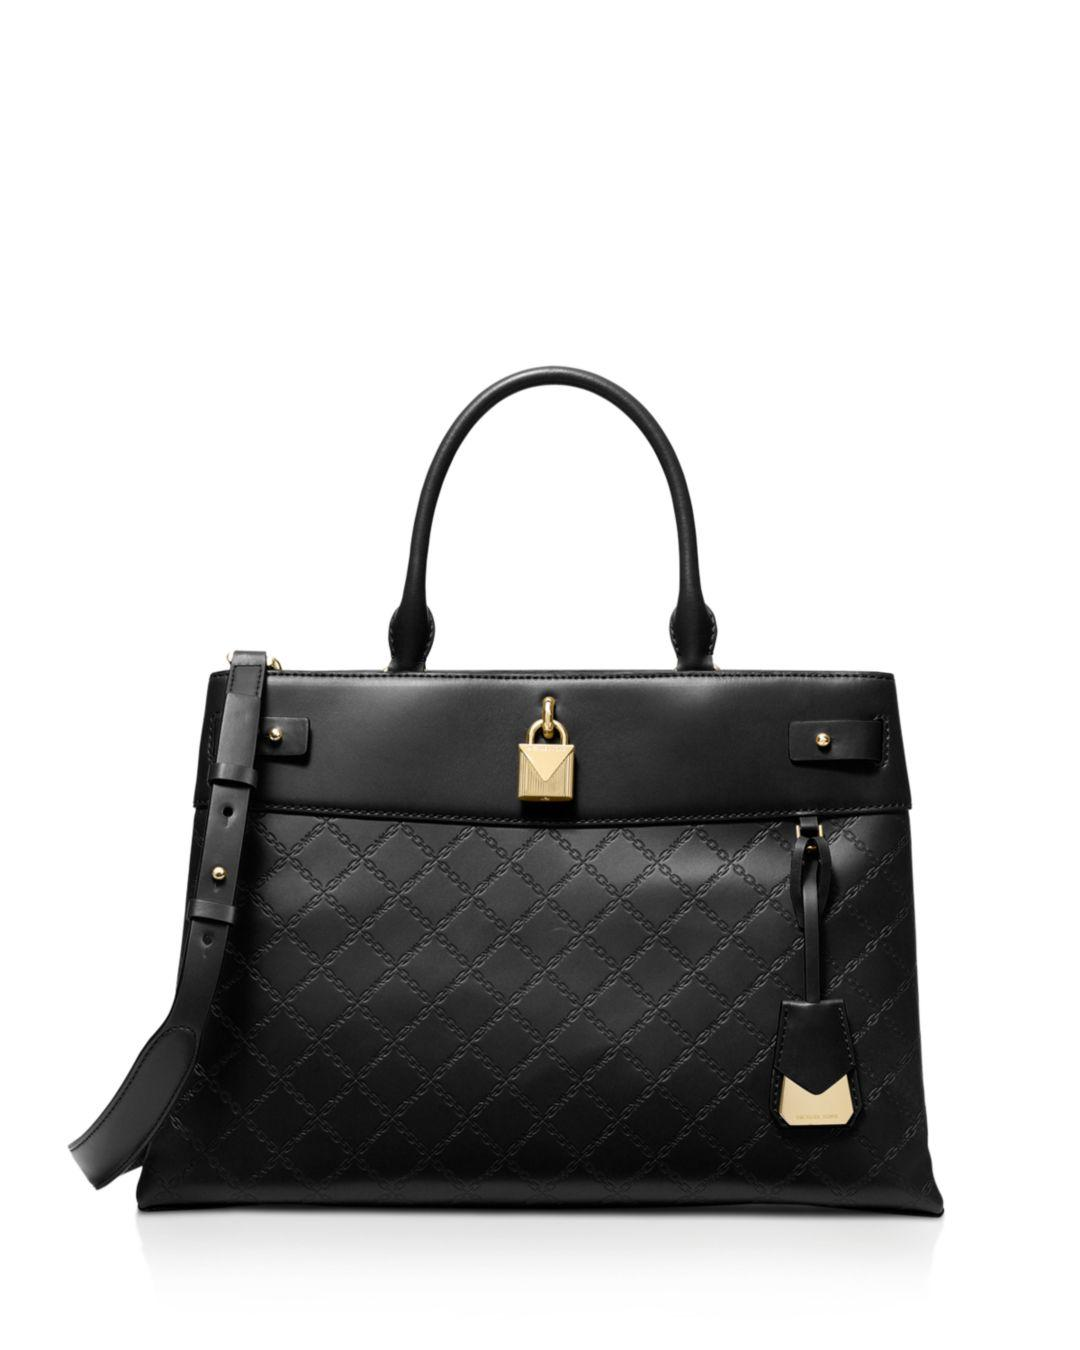 6a3726344a66 Lyst - MICHAEL Michael Kors Large Gramercy Leather Satchel in Black